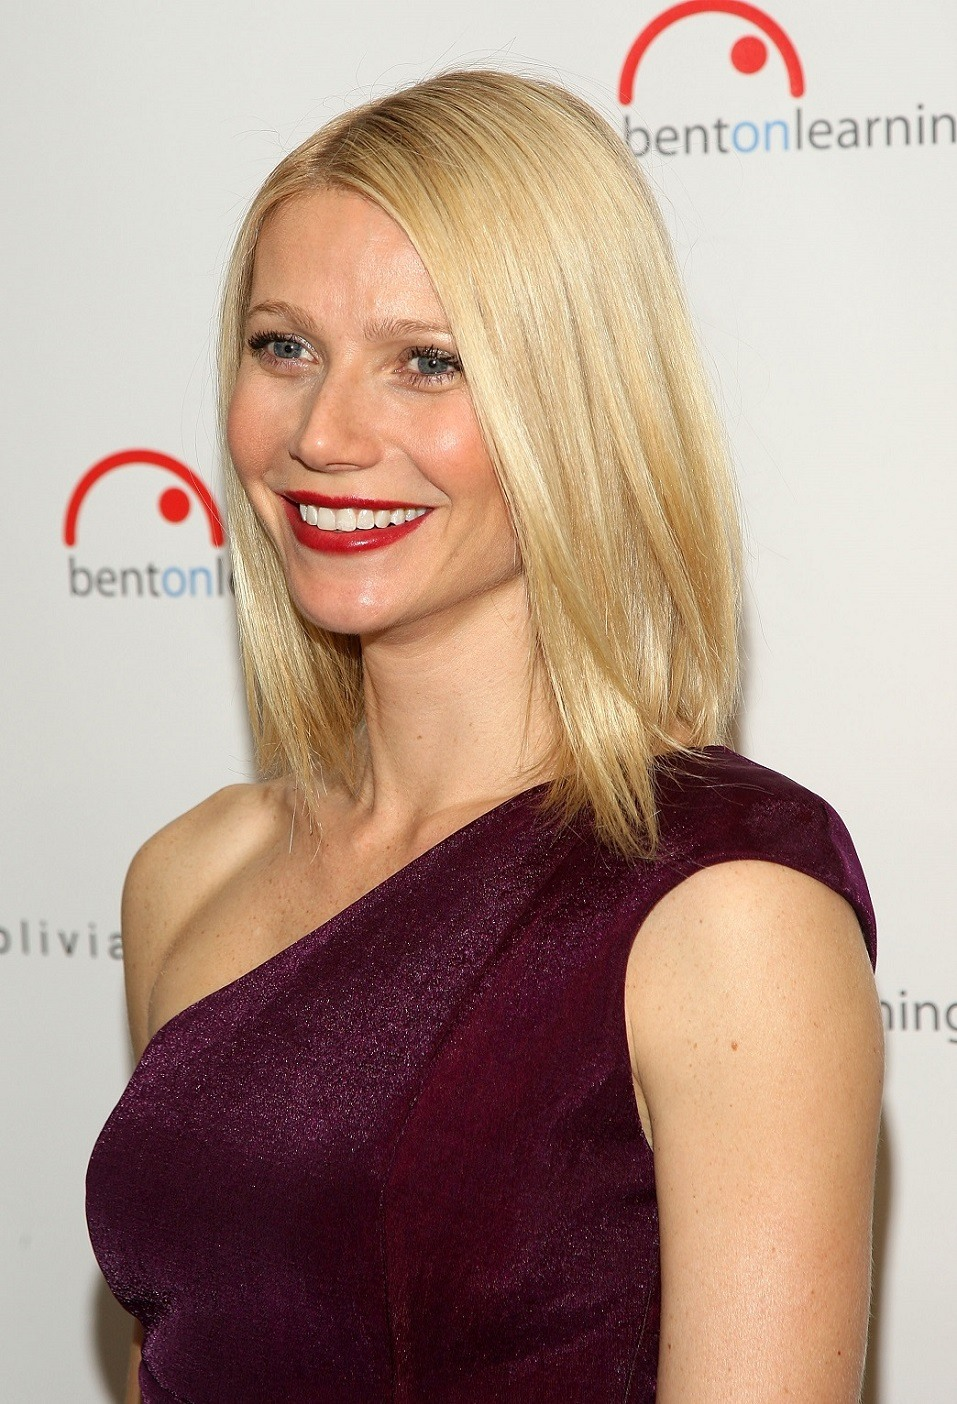 Actress Gwyneth Paltrow attends the Bent On Learning Charity event at Stephen Weiss Studio